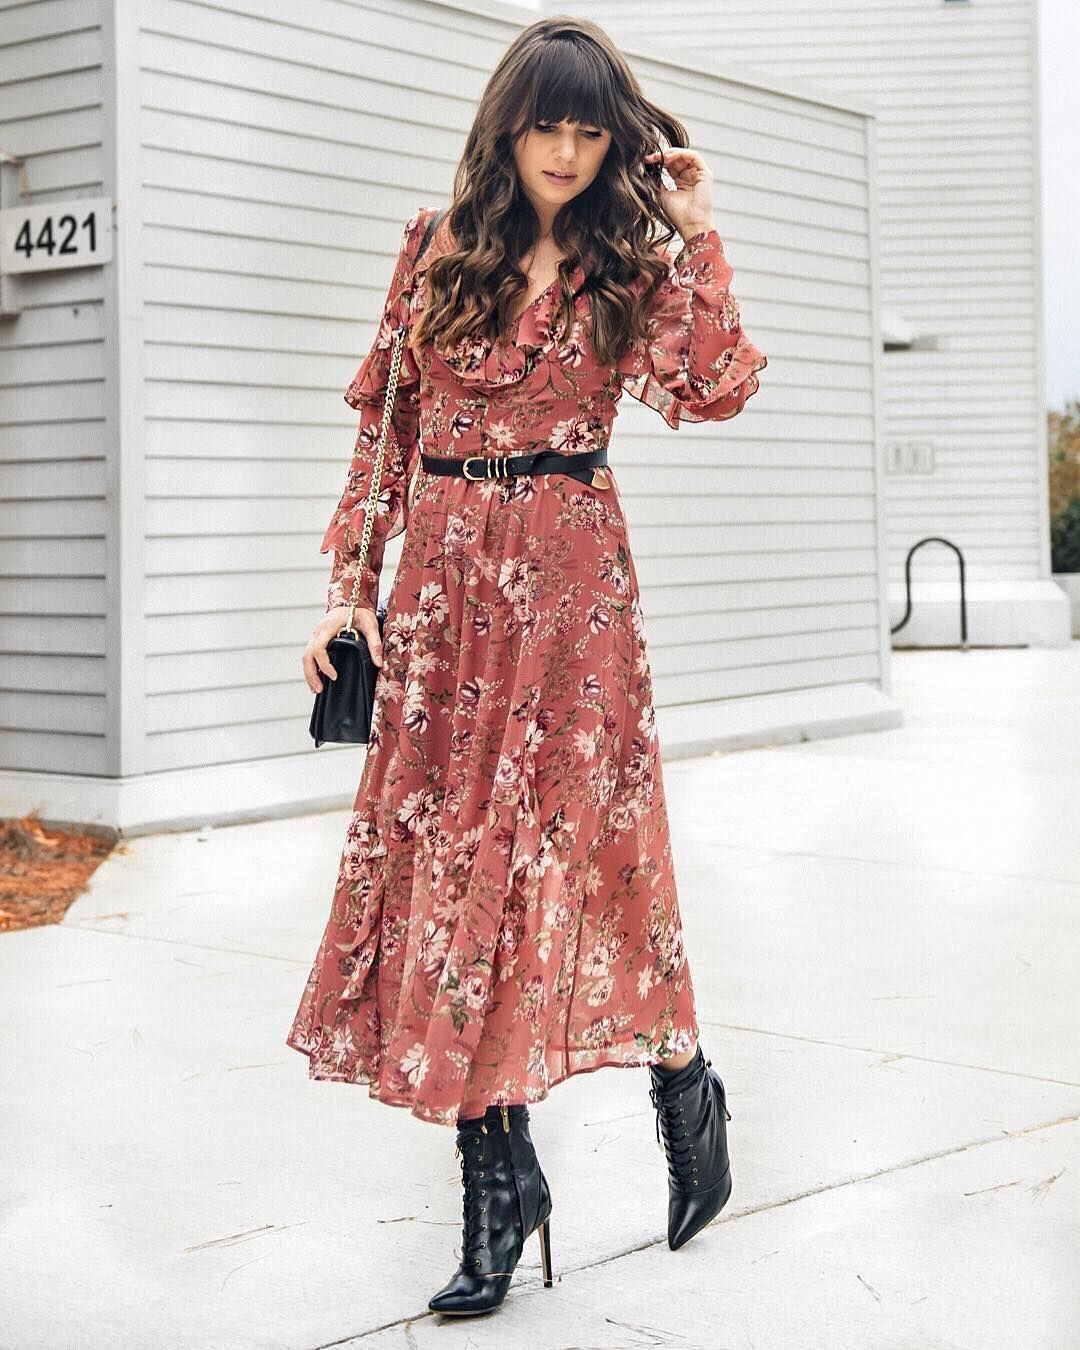 @thematimes rockin' this floral day-to-night look. ⠀  ⠀  Share your style tips with #MyPinterest.